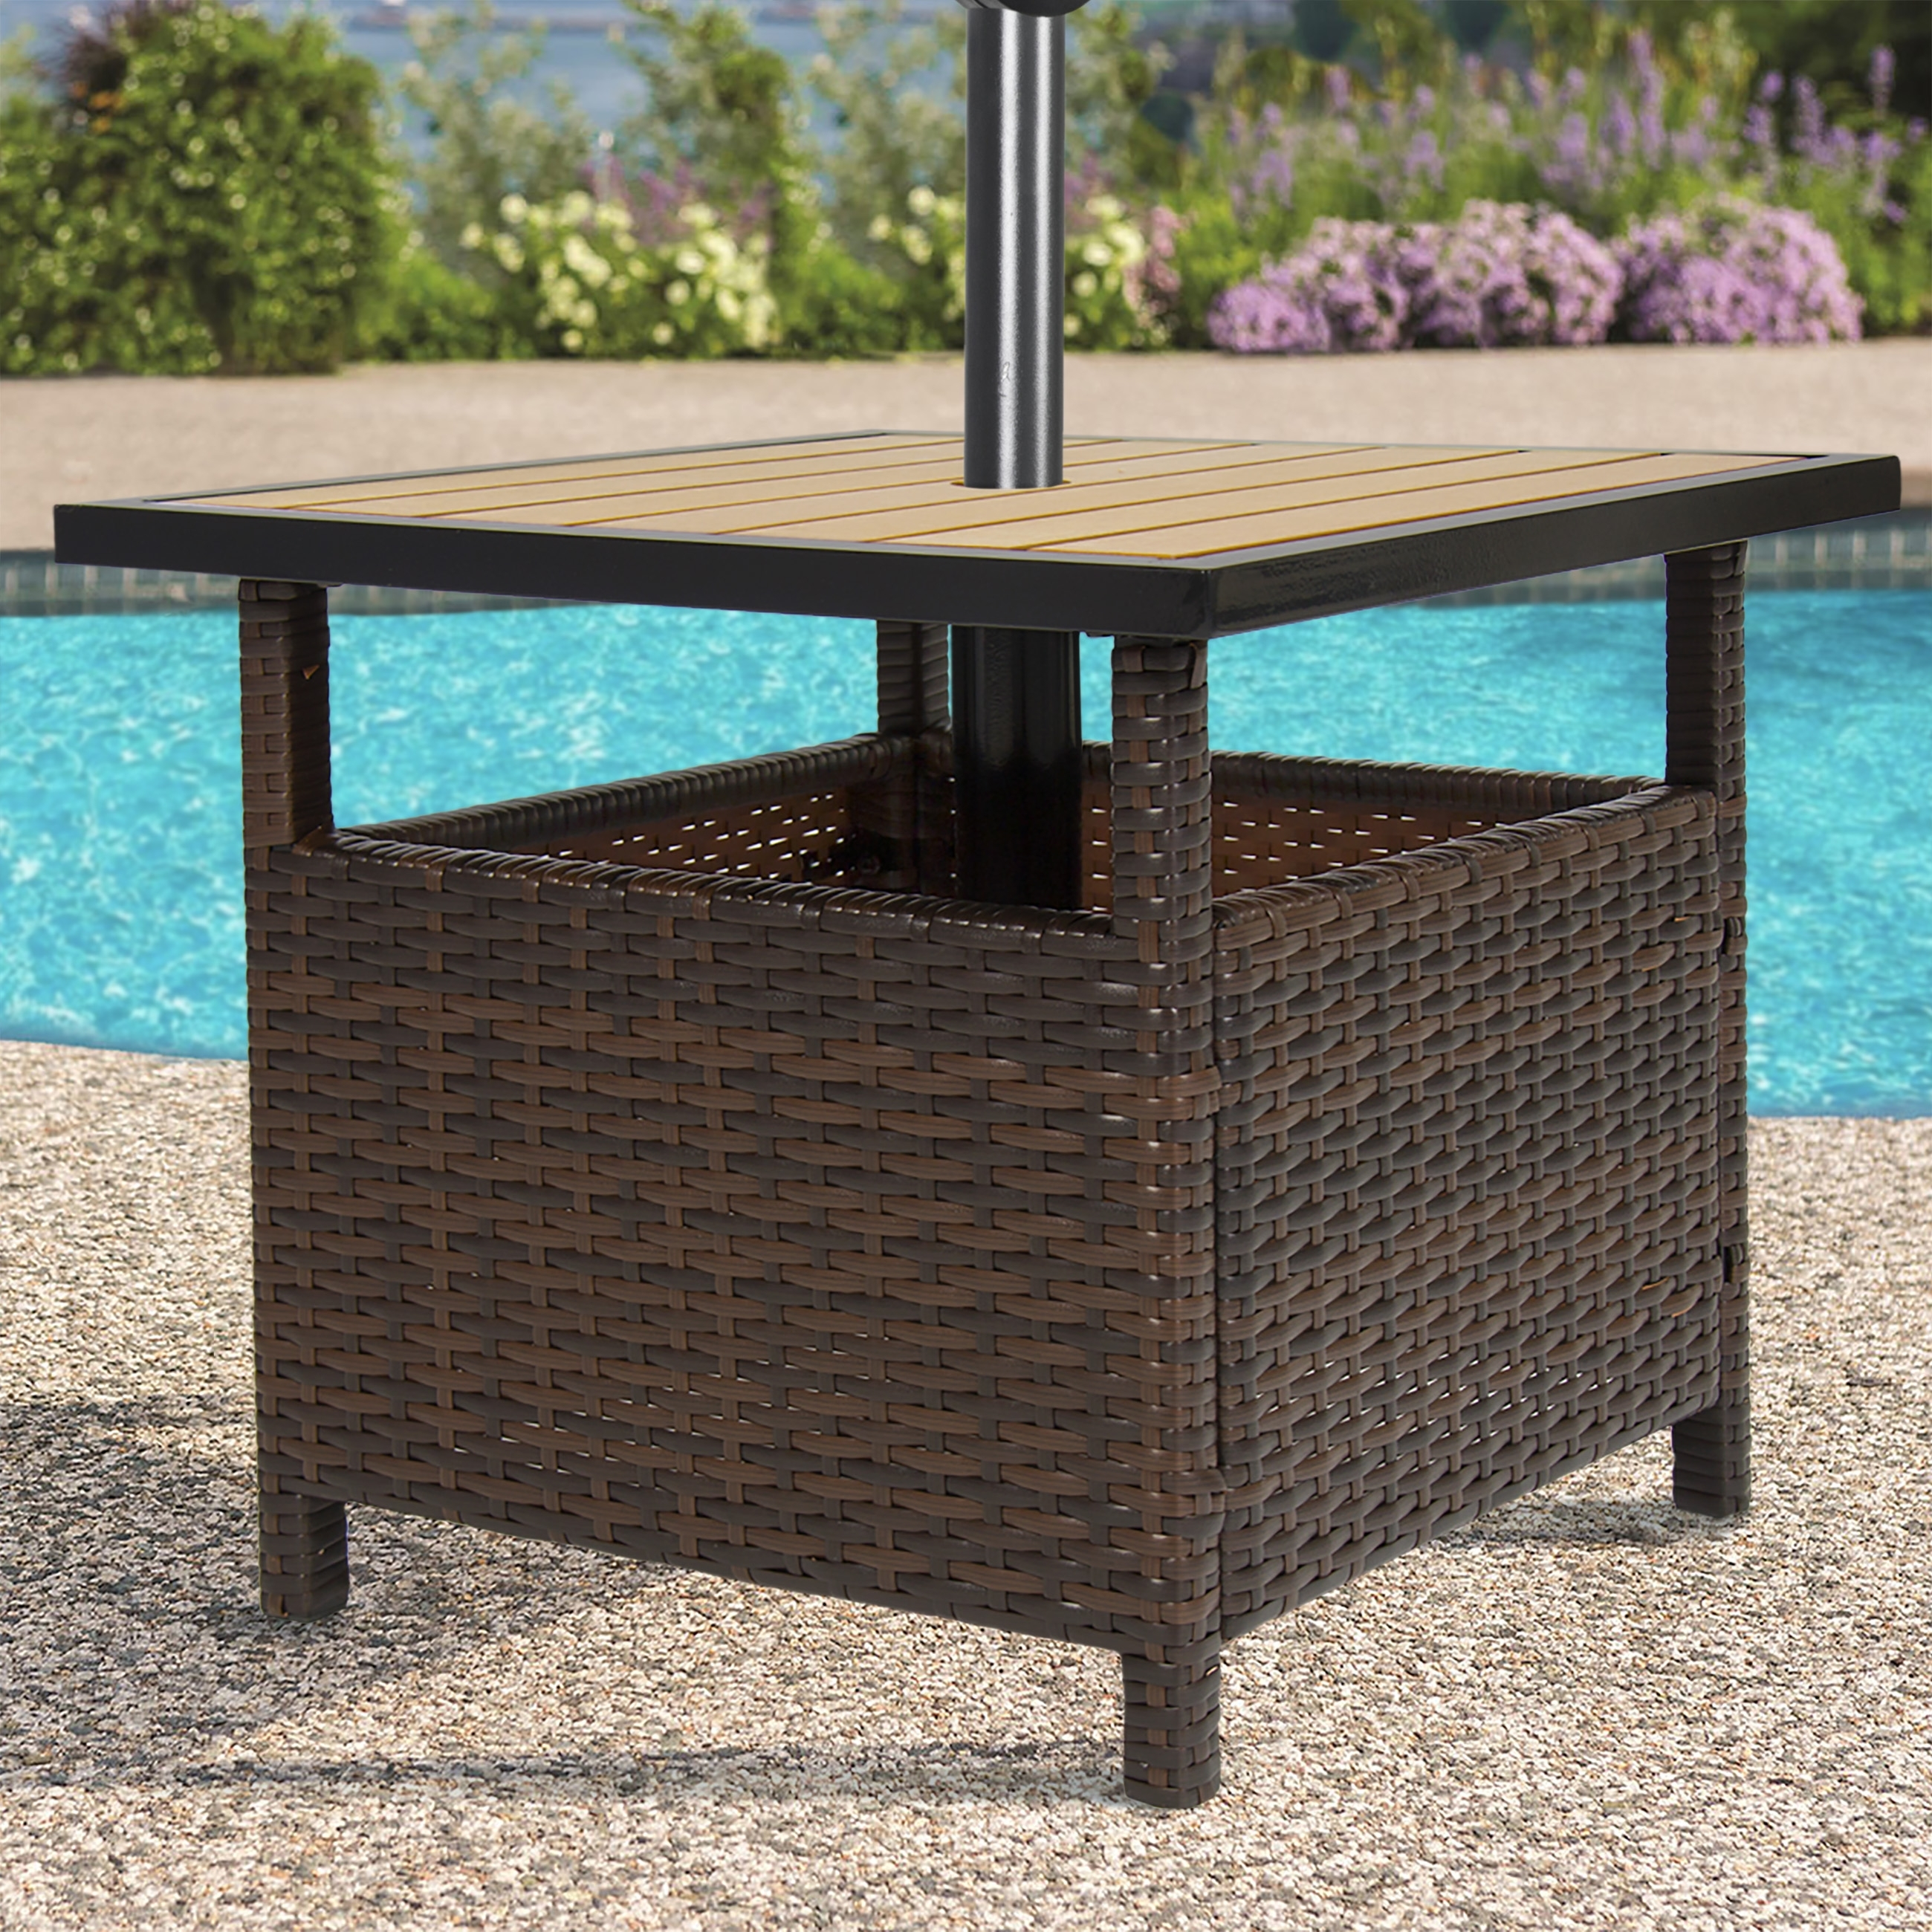 Most Current Patio Umbrella Stand Side Tables With Regard To Best Choice Products Outdoor Furniture Wicker Rattan Patio Umbrella (View 3 of 20)